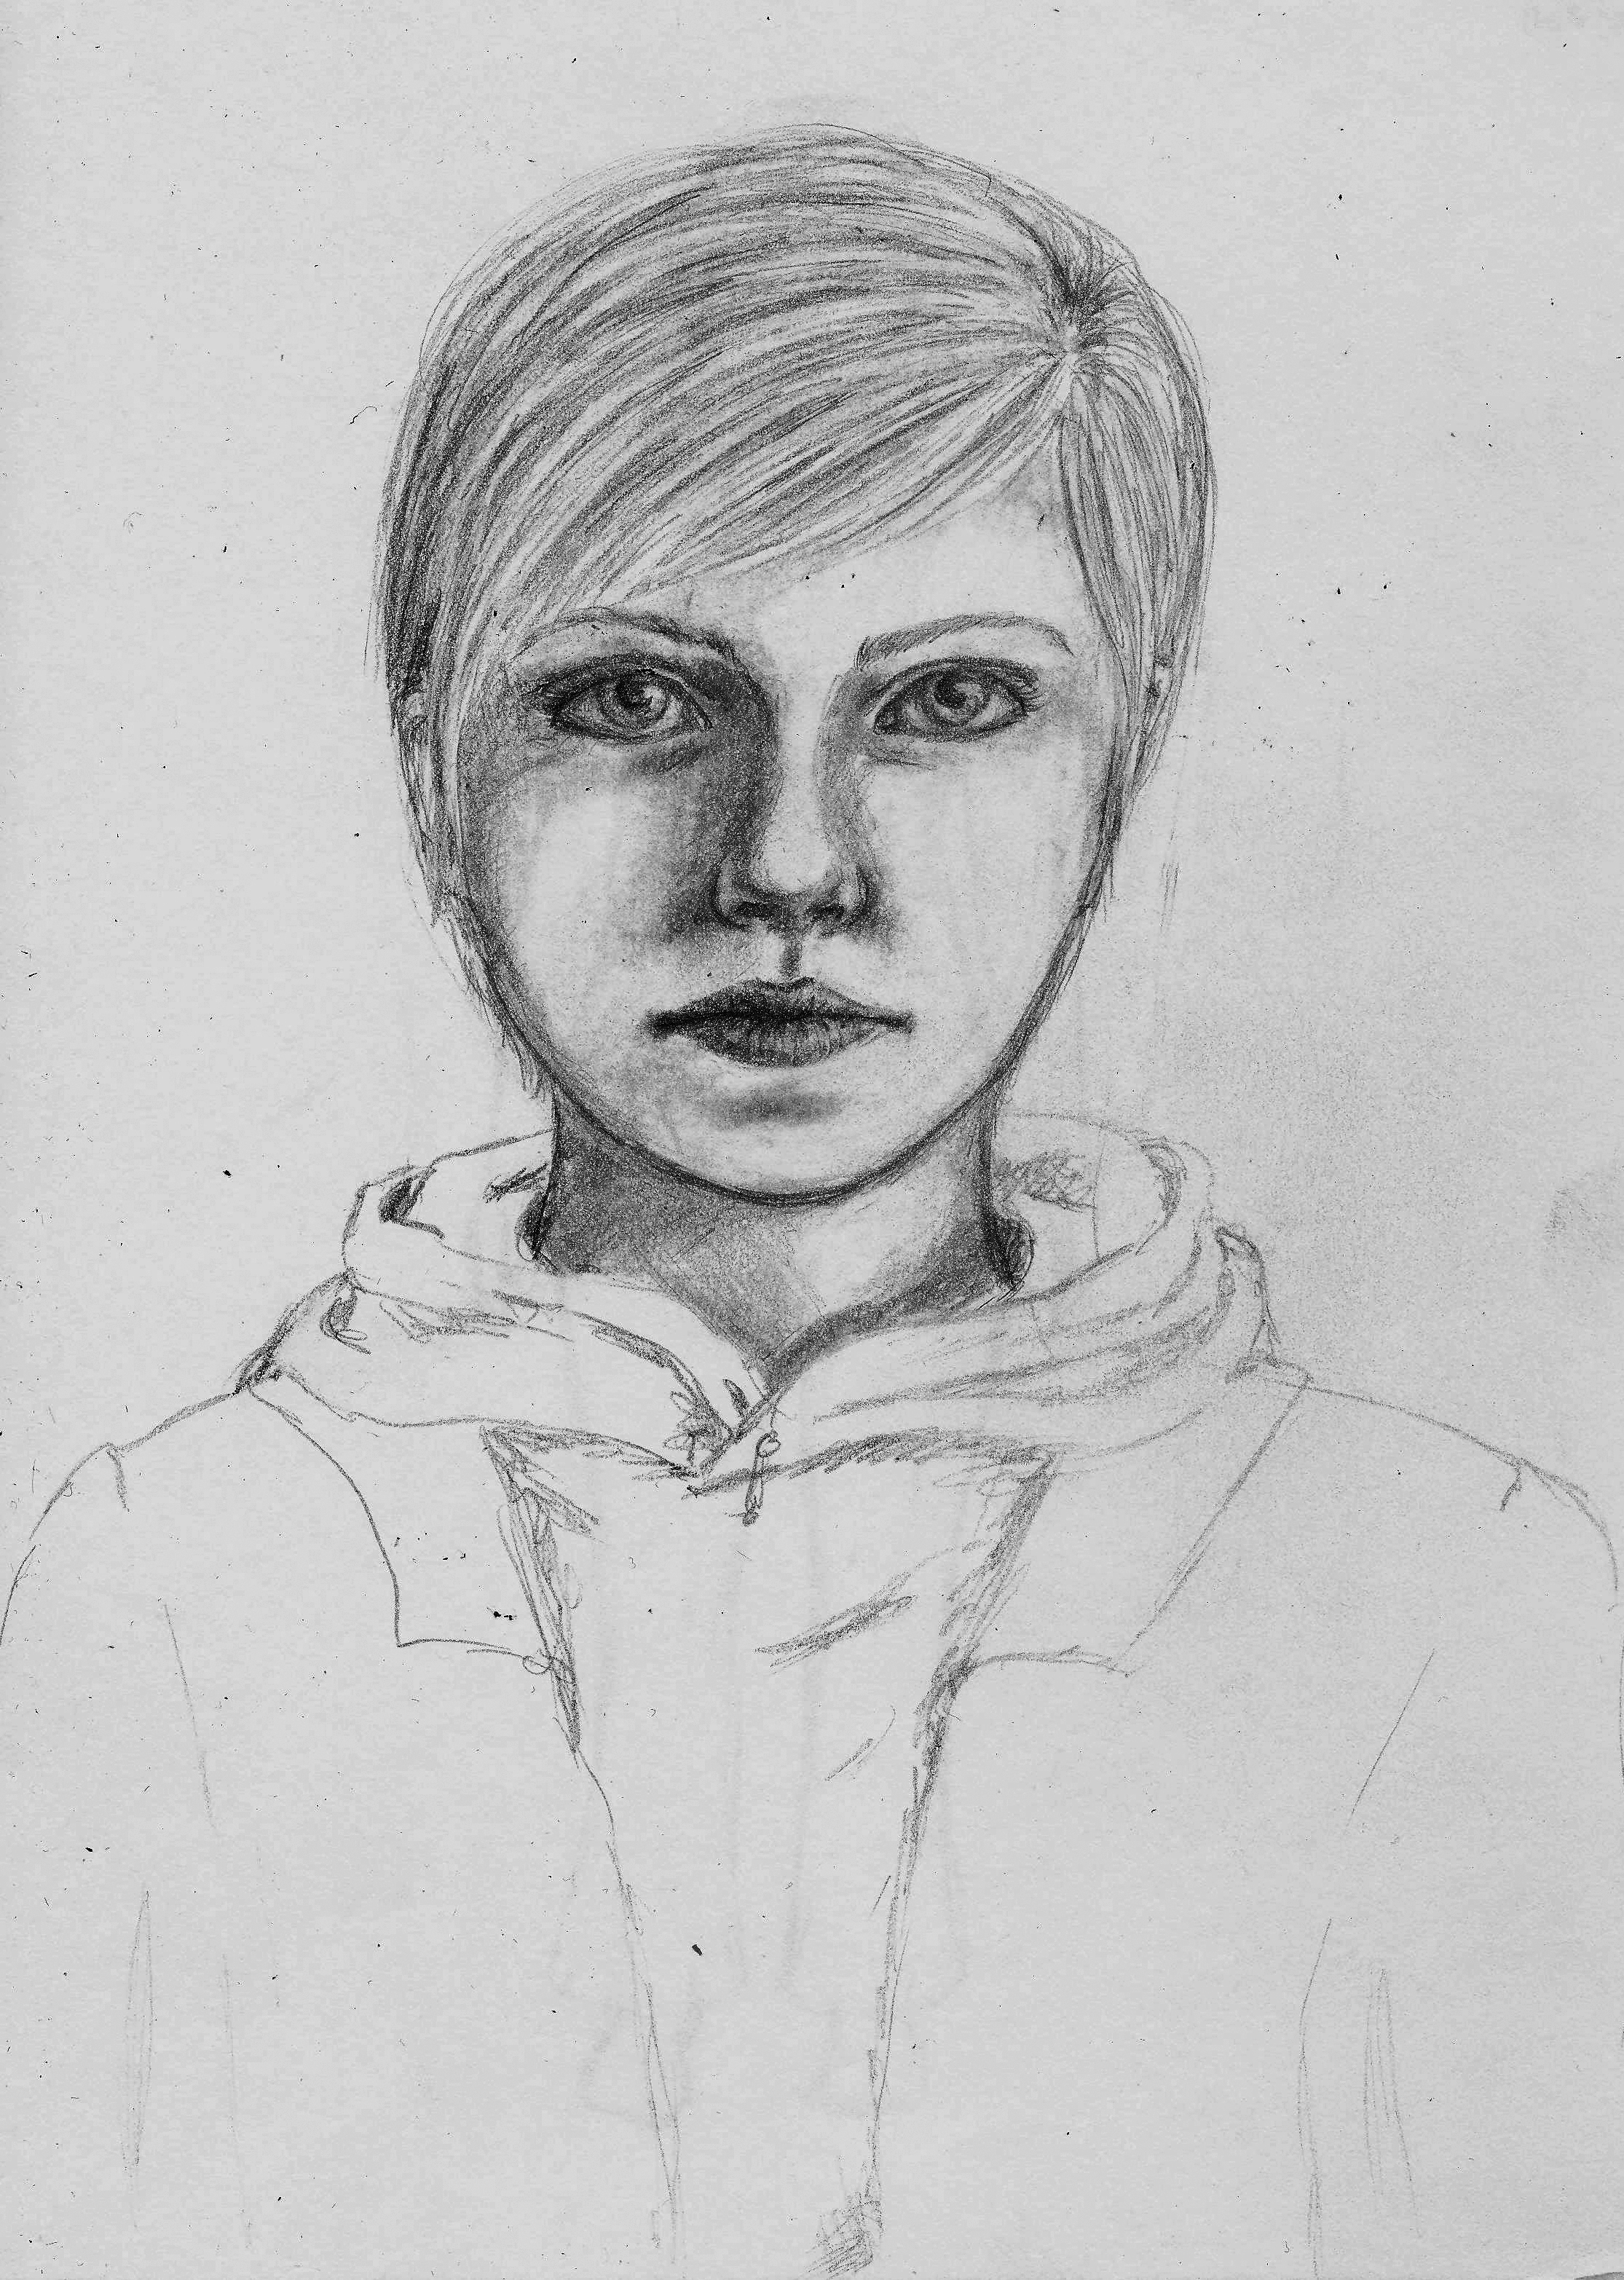 Tegan Portrait Sketch